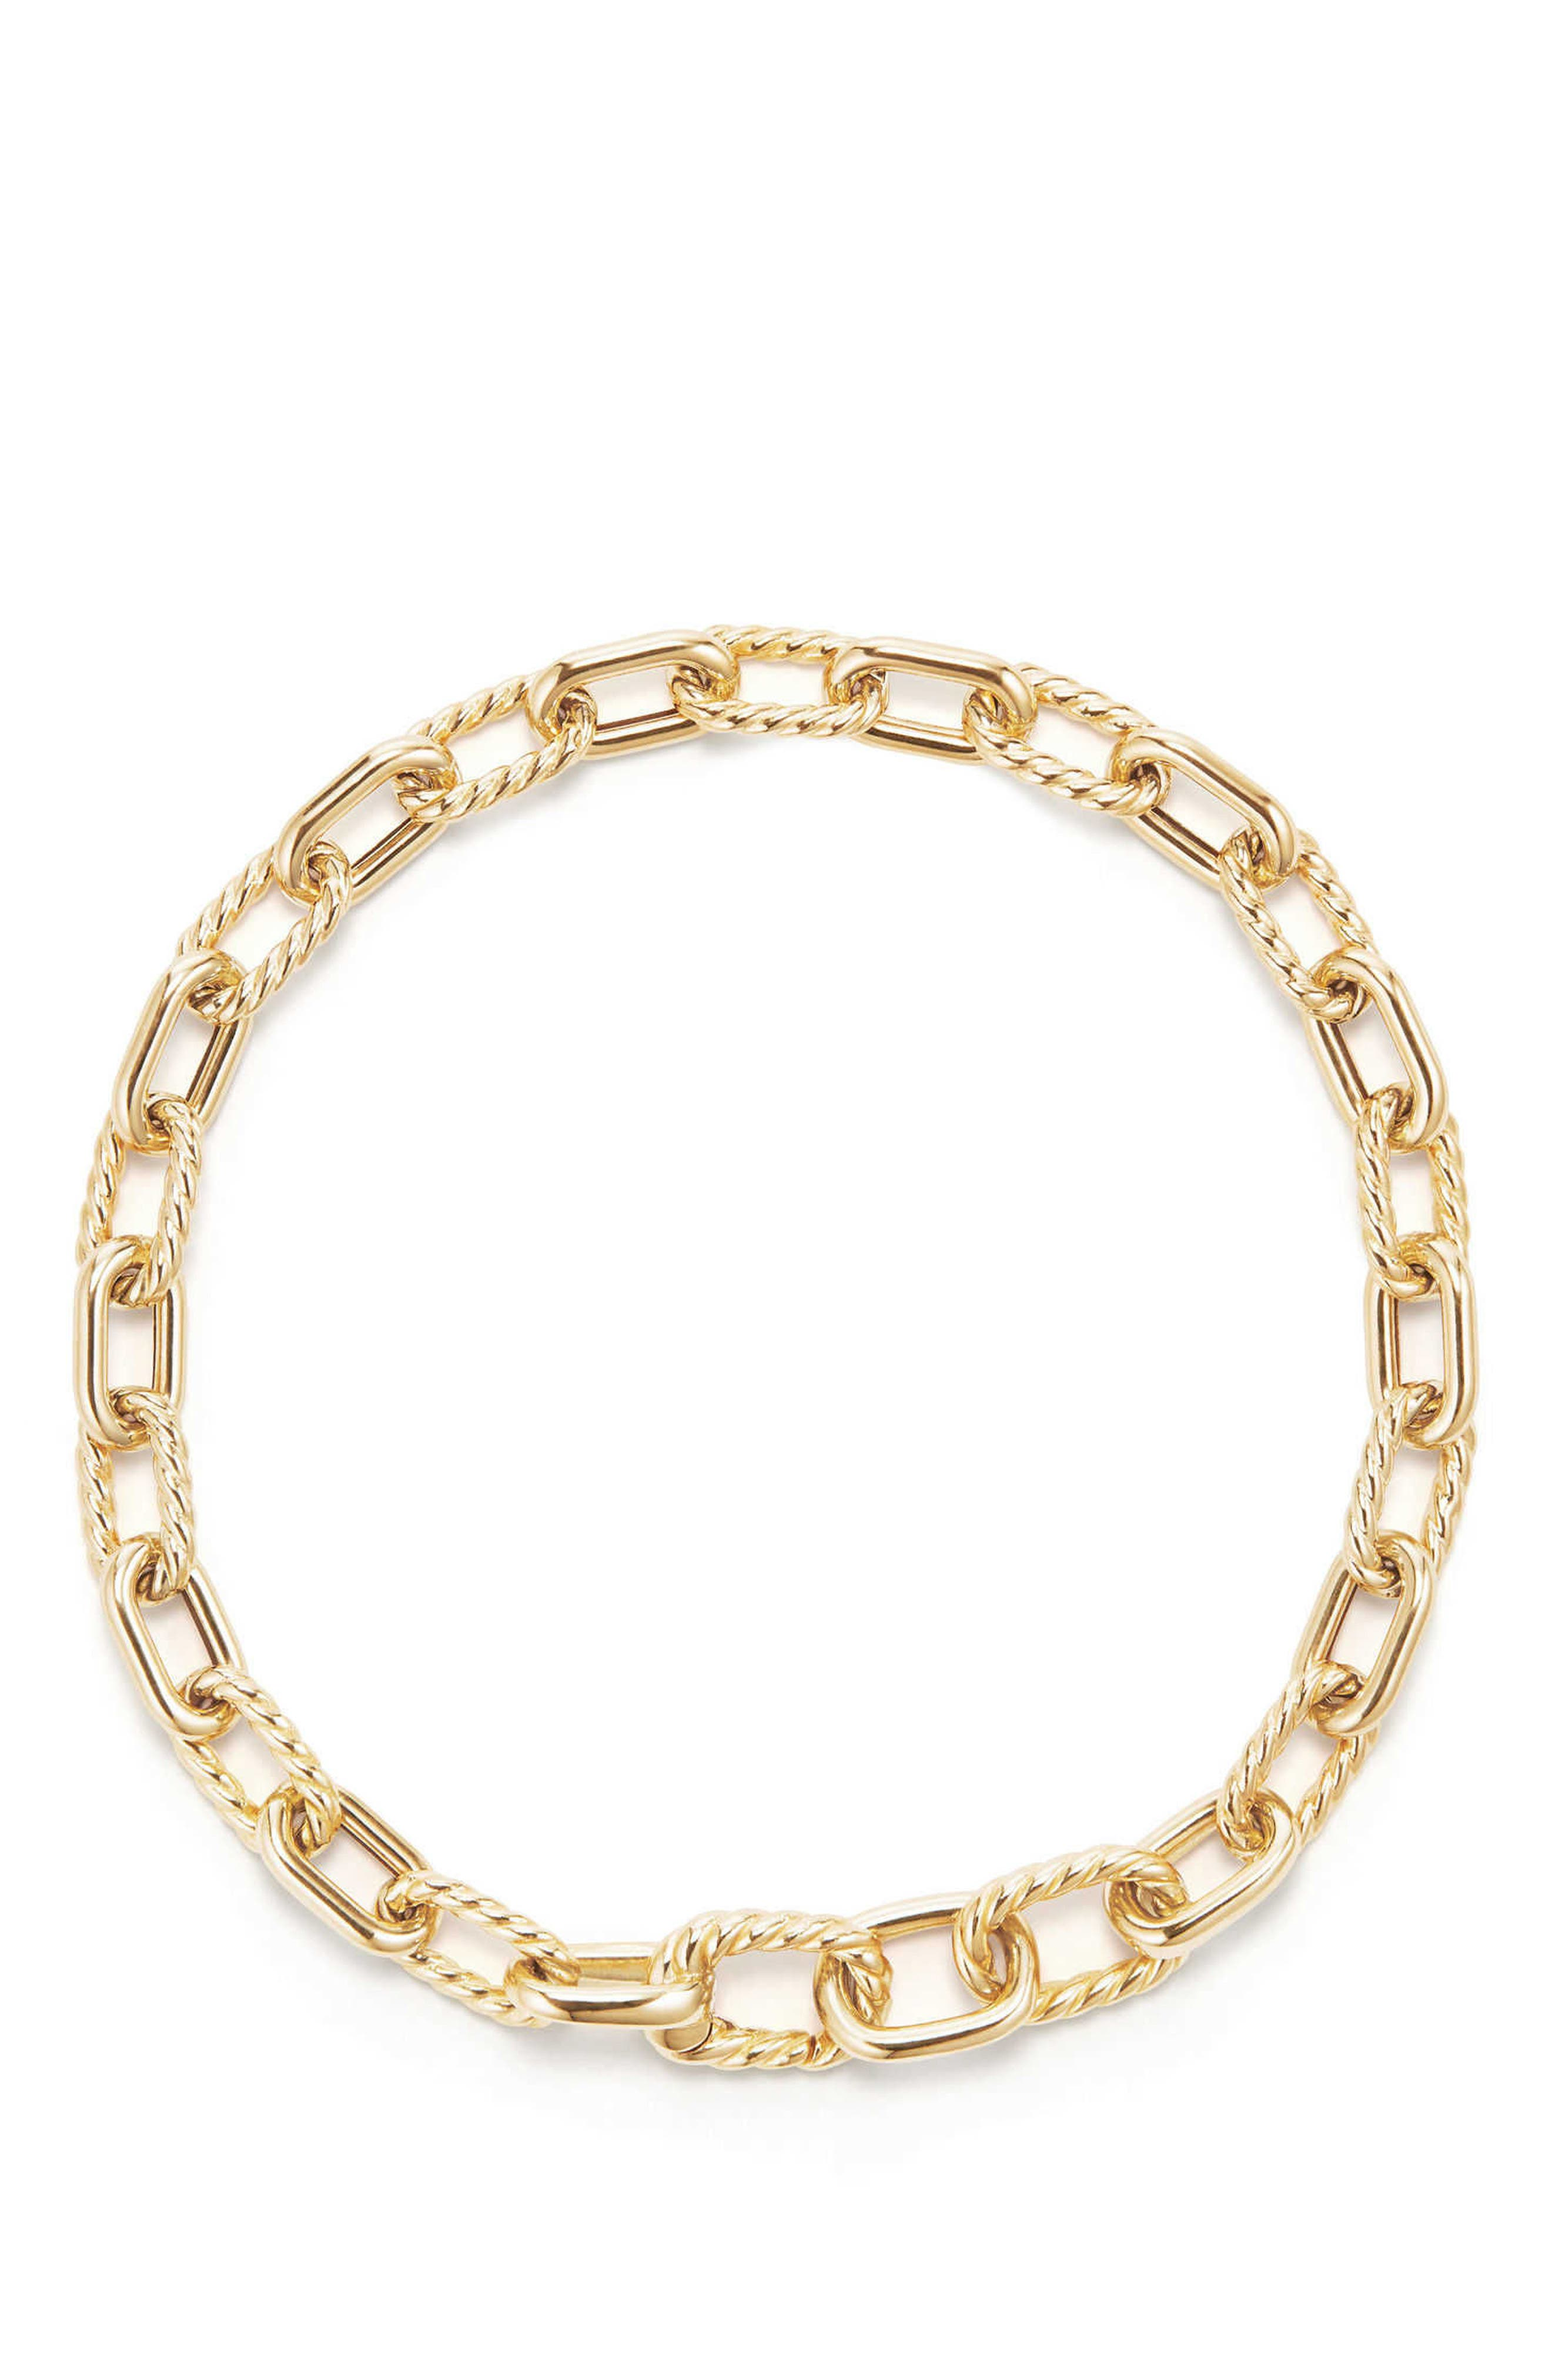 DY Madison Bold Chain Bracelet in 18K Gold,                         Main,                         color, GOLD